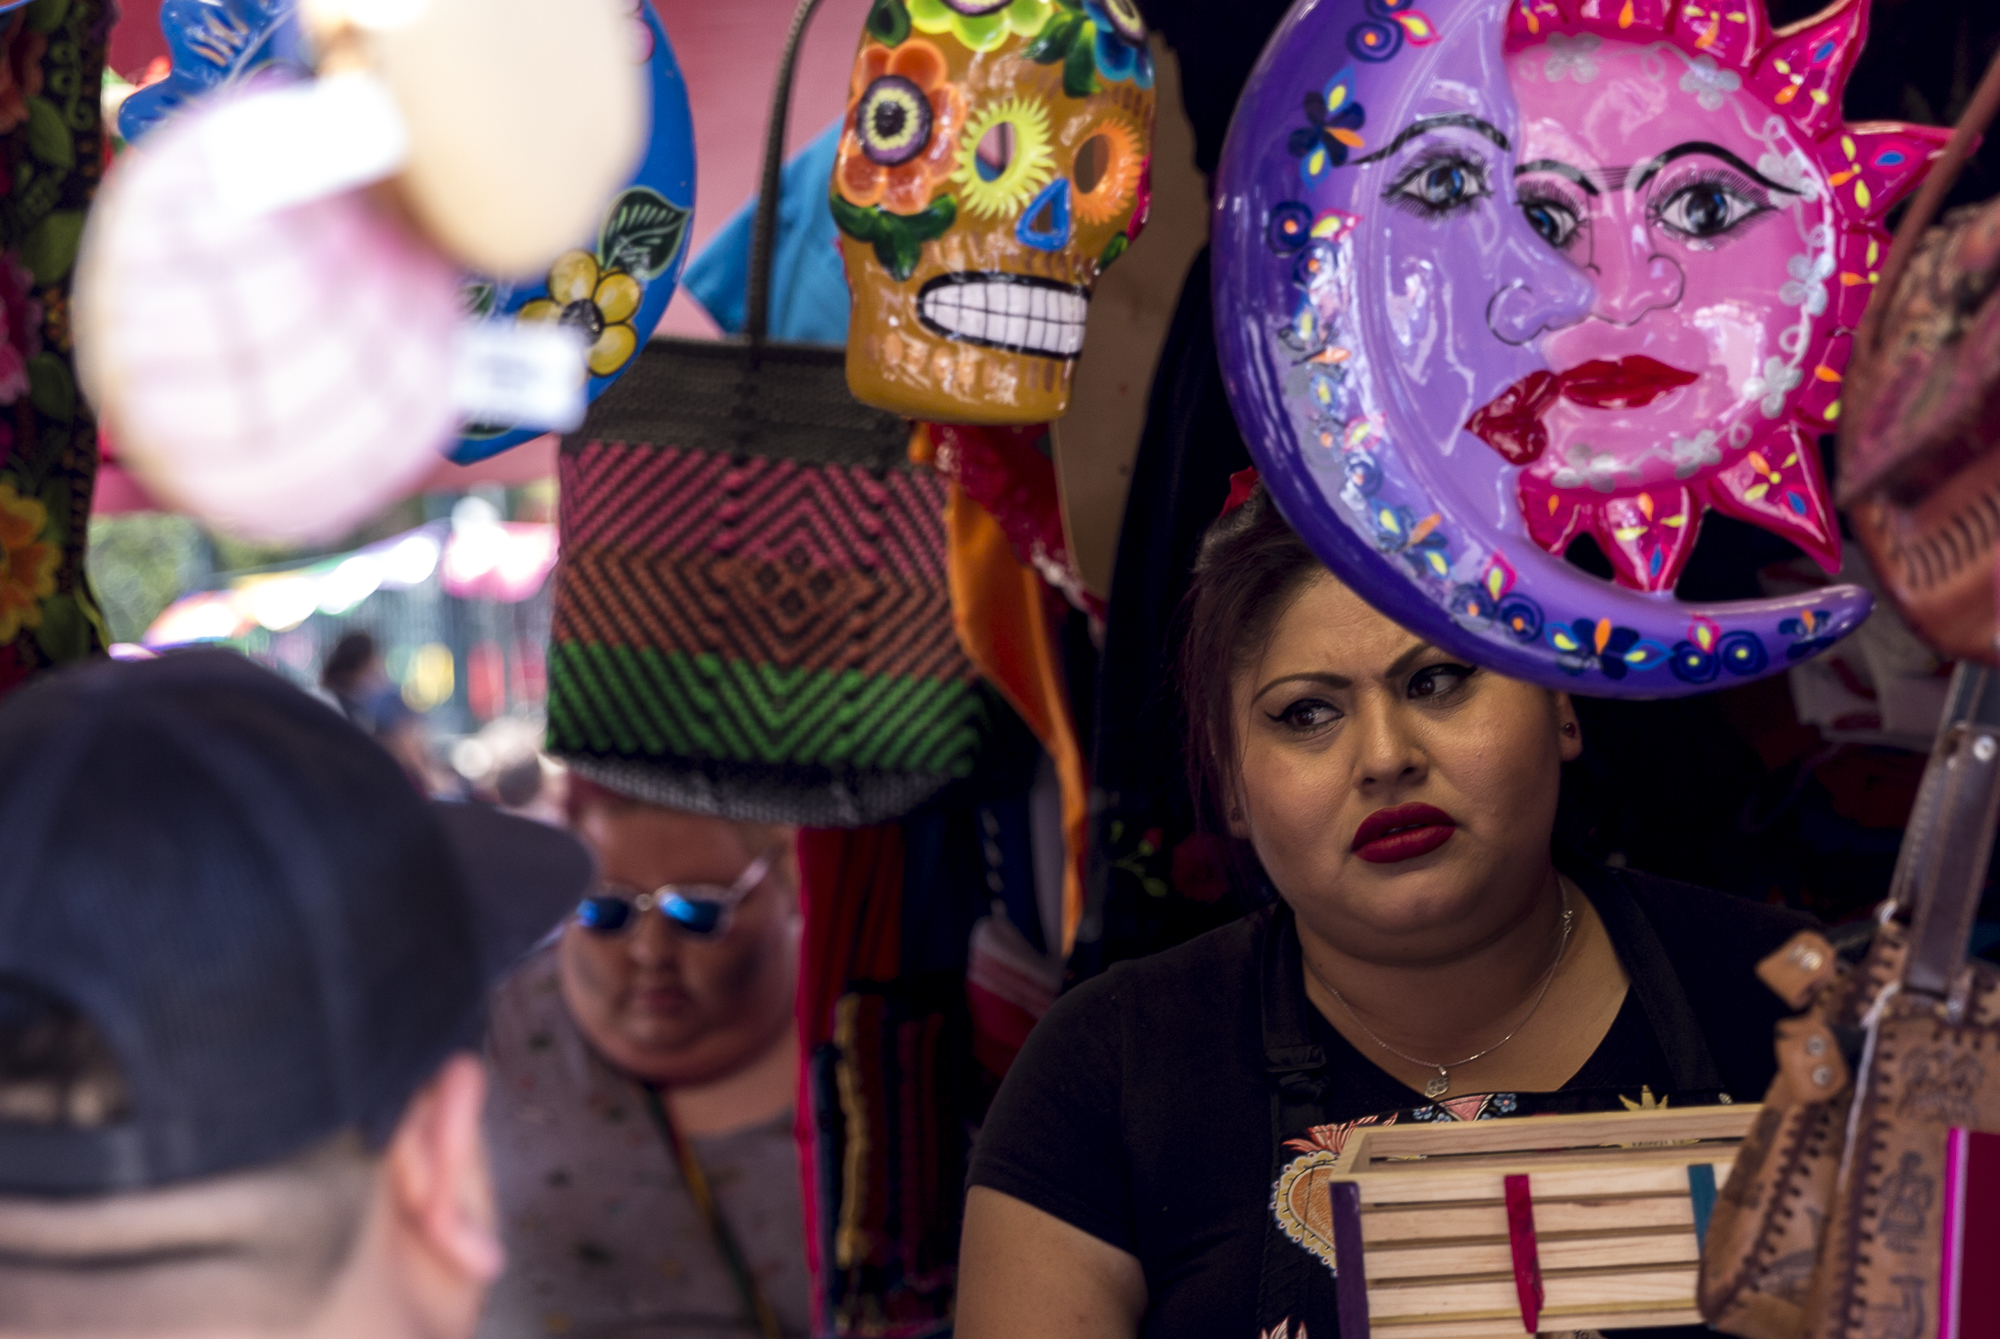 A stall owner has an argument with a customer over costs of one of her products being sold during the annual Olvera Street Cinco De Mayo celebration in Downtown Los Angeles, California on May 5, 2018. (Matthew Martin/Corsair Photo)